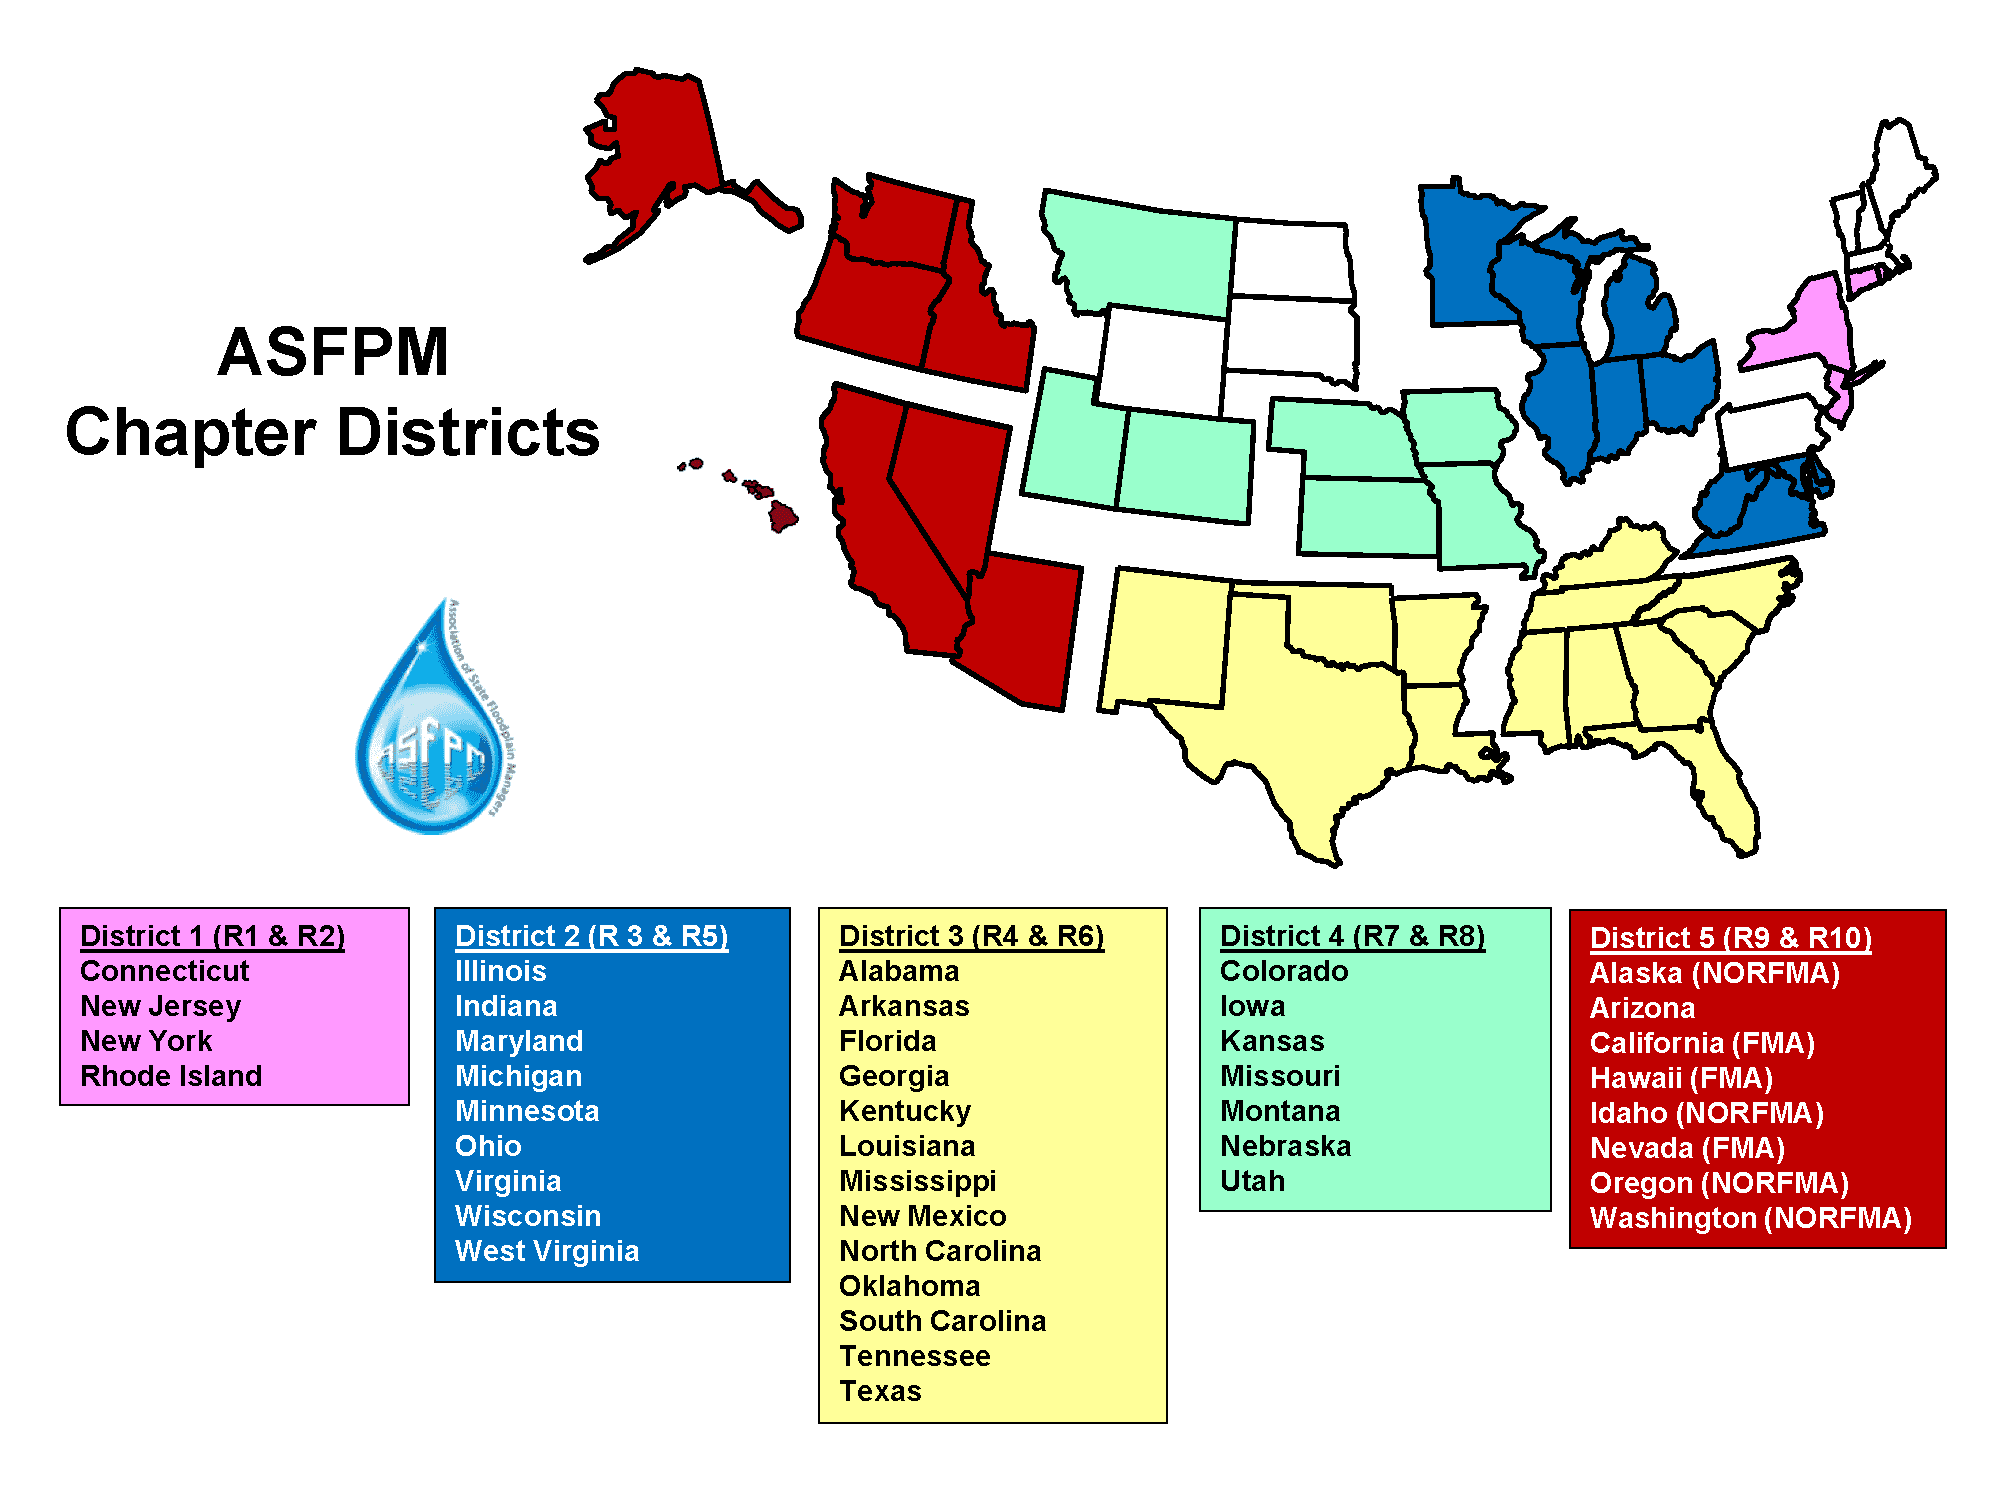 ASFPM Chapter Districts Map